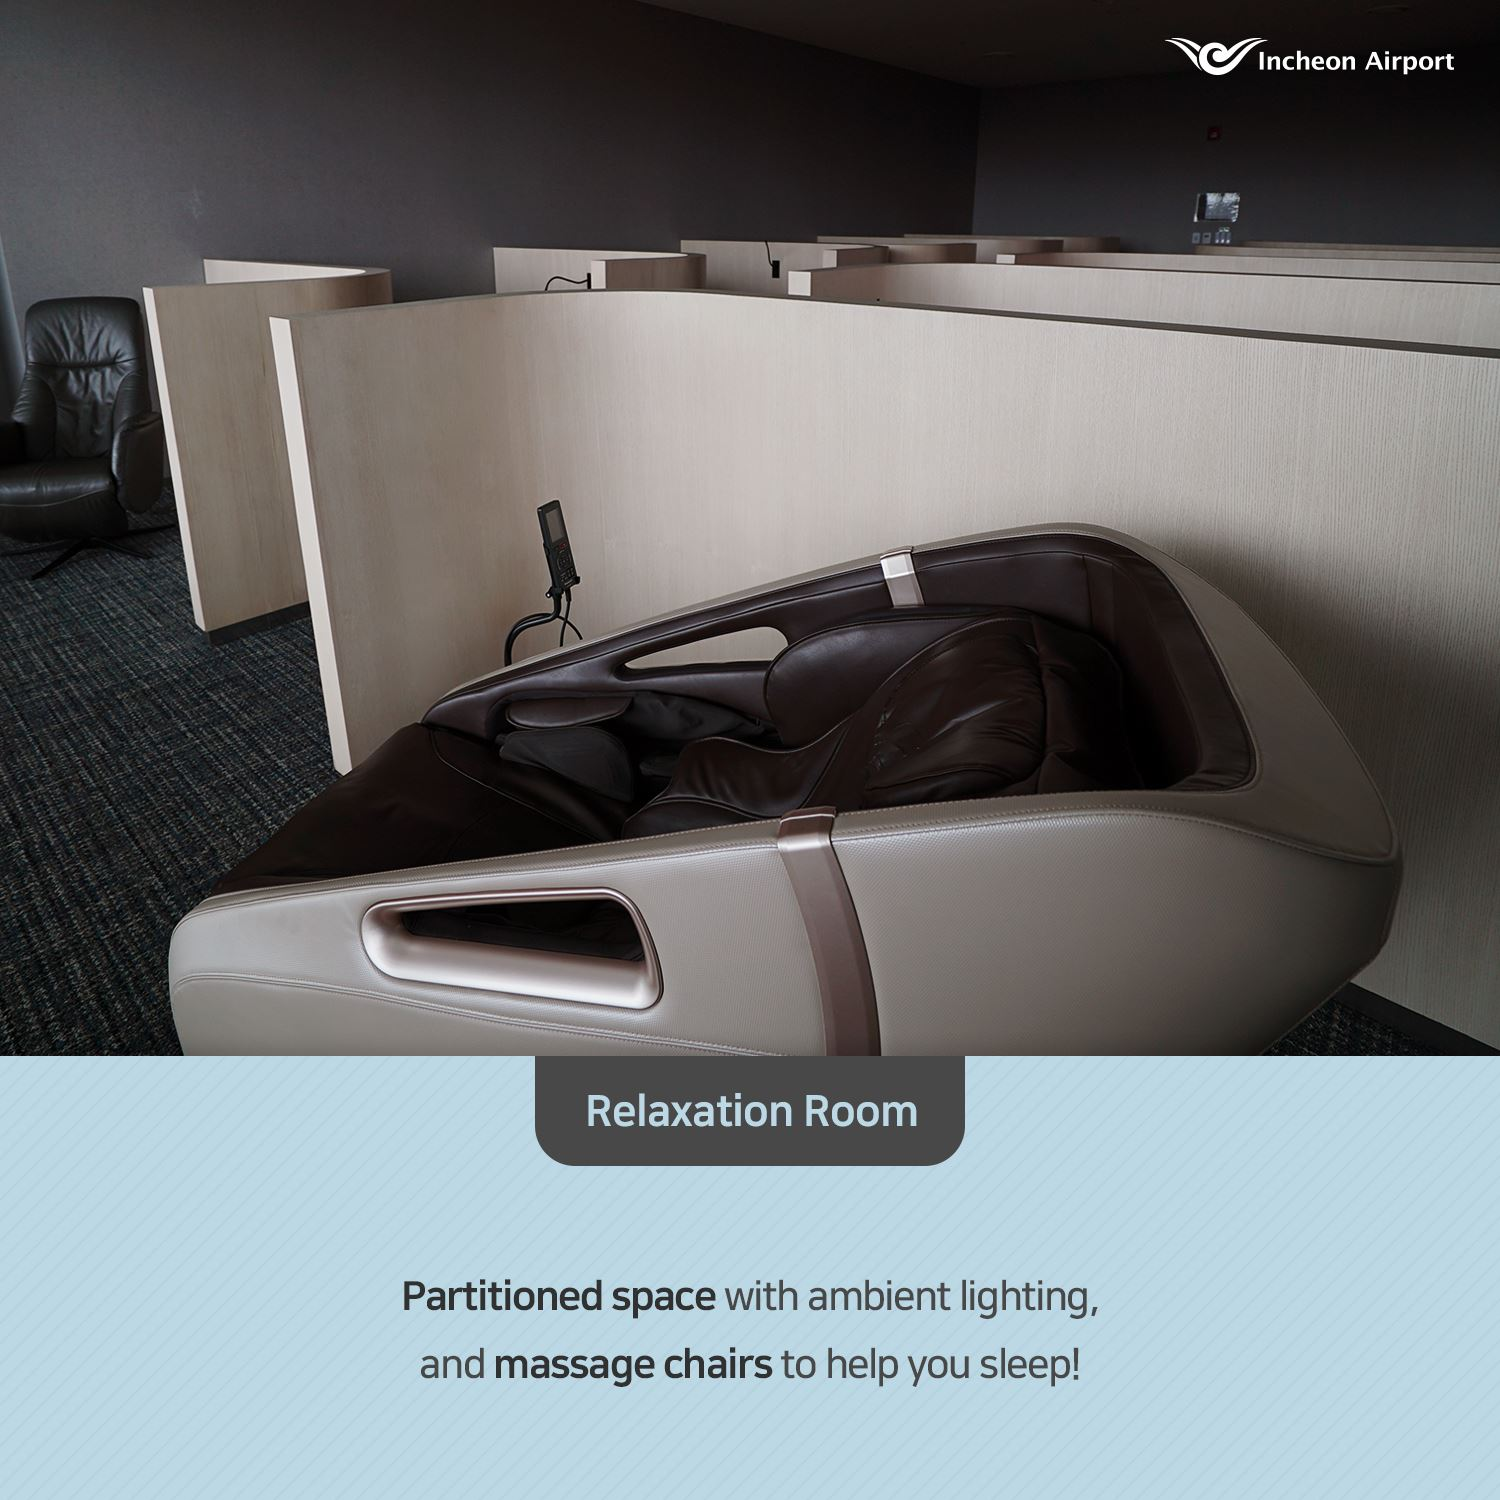 Relax at Incheon Airport. Image credit:  Incheon International Airport